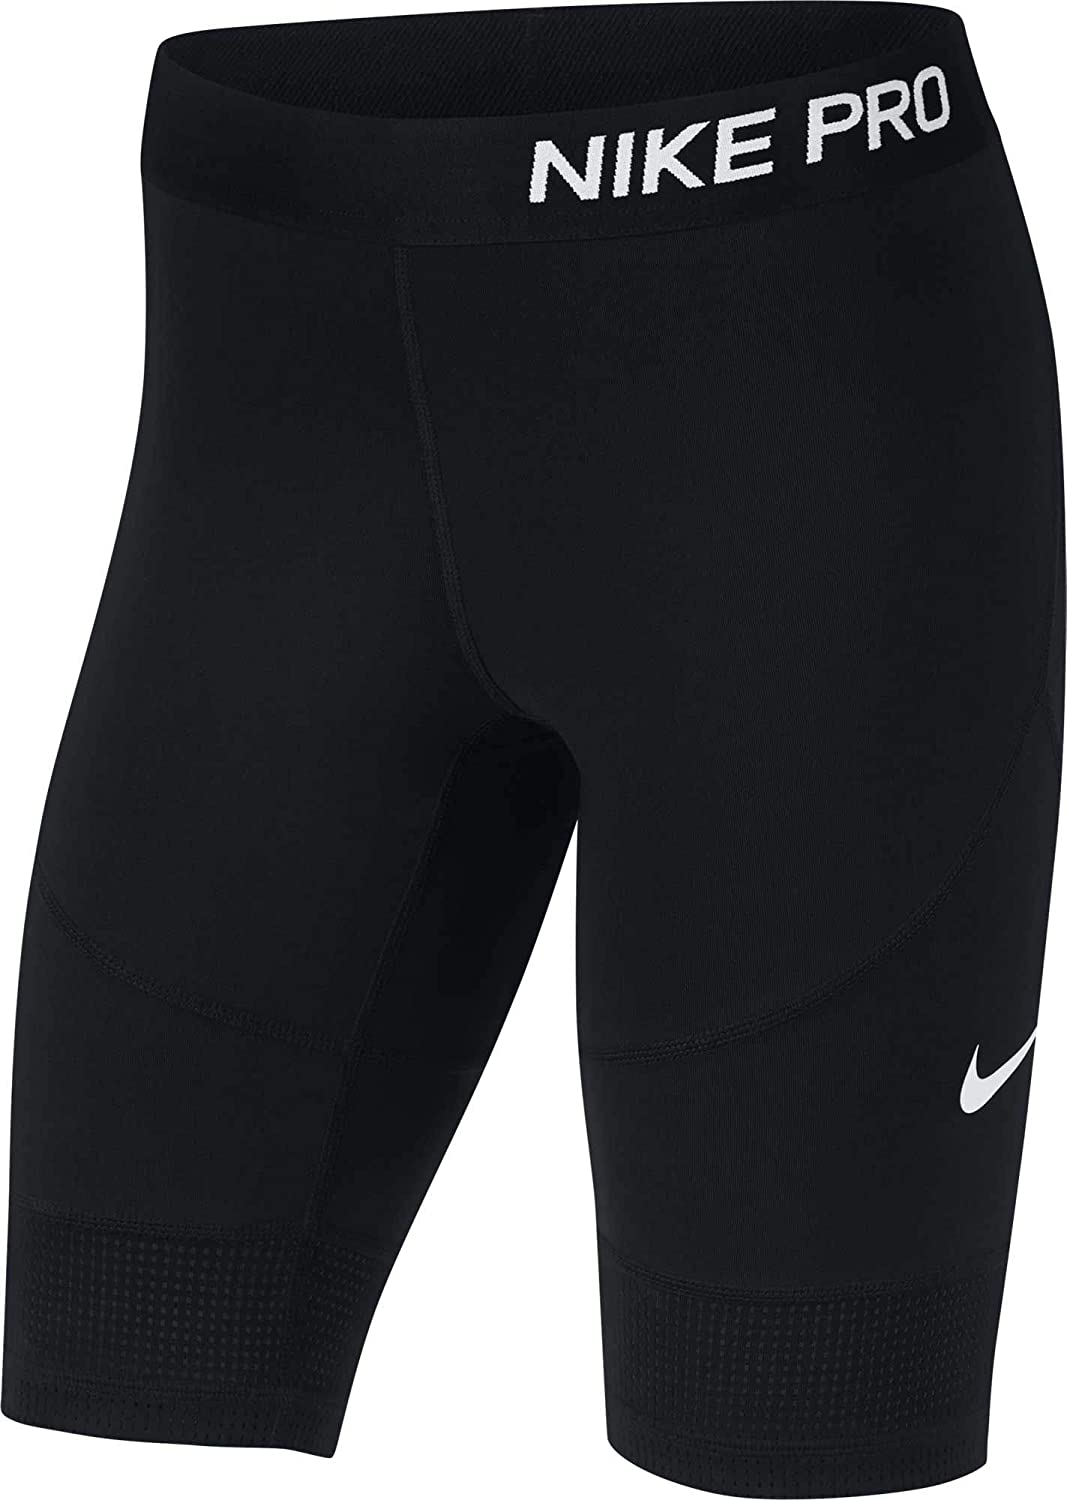 Nike Girls' Pro Training Shorts 939003-010